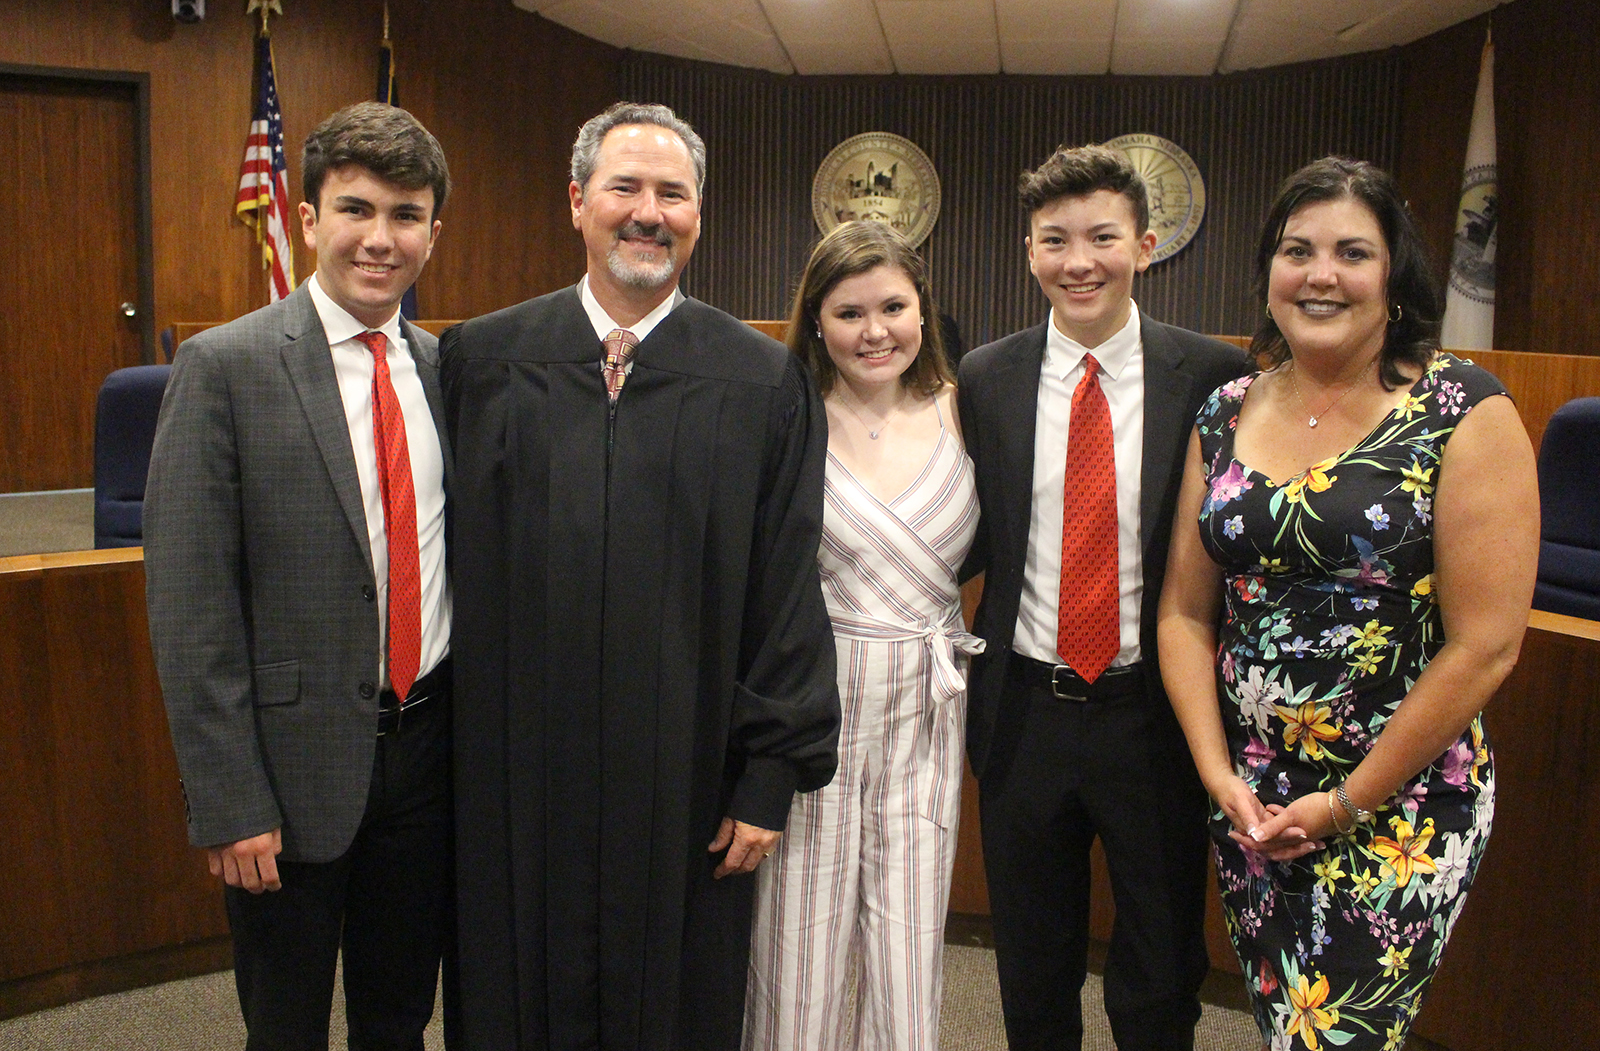 Judge Grant A. Forsberg, second from left, stands for a portrait with his children, from left, Seth, London and Devon, and wife Shawna, far right. (Photo by Scott Stewart)